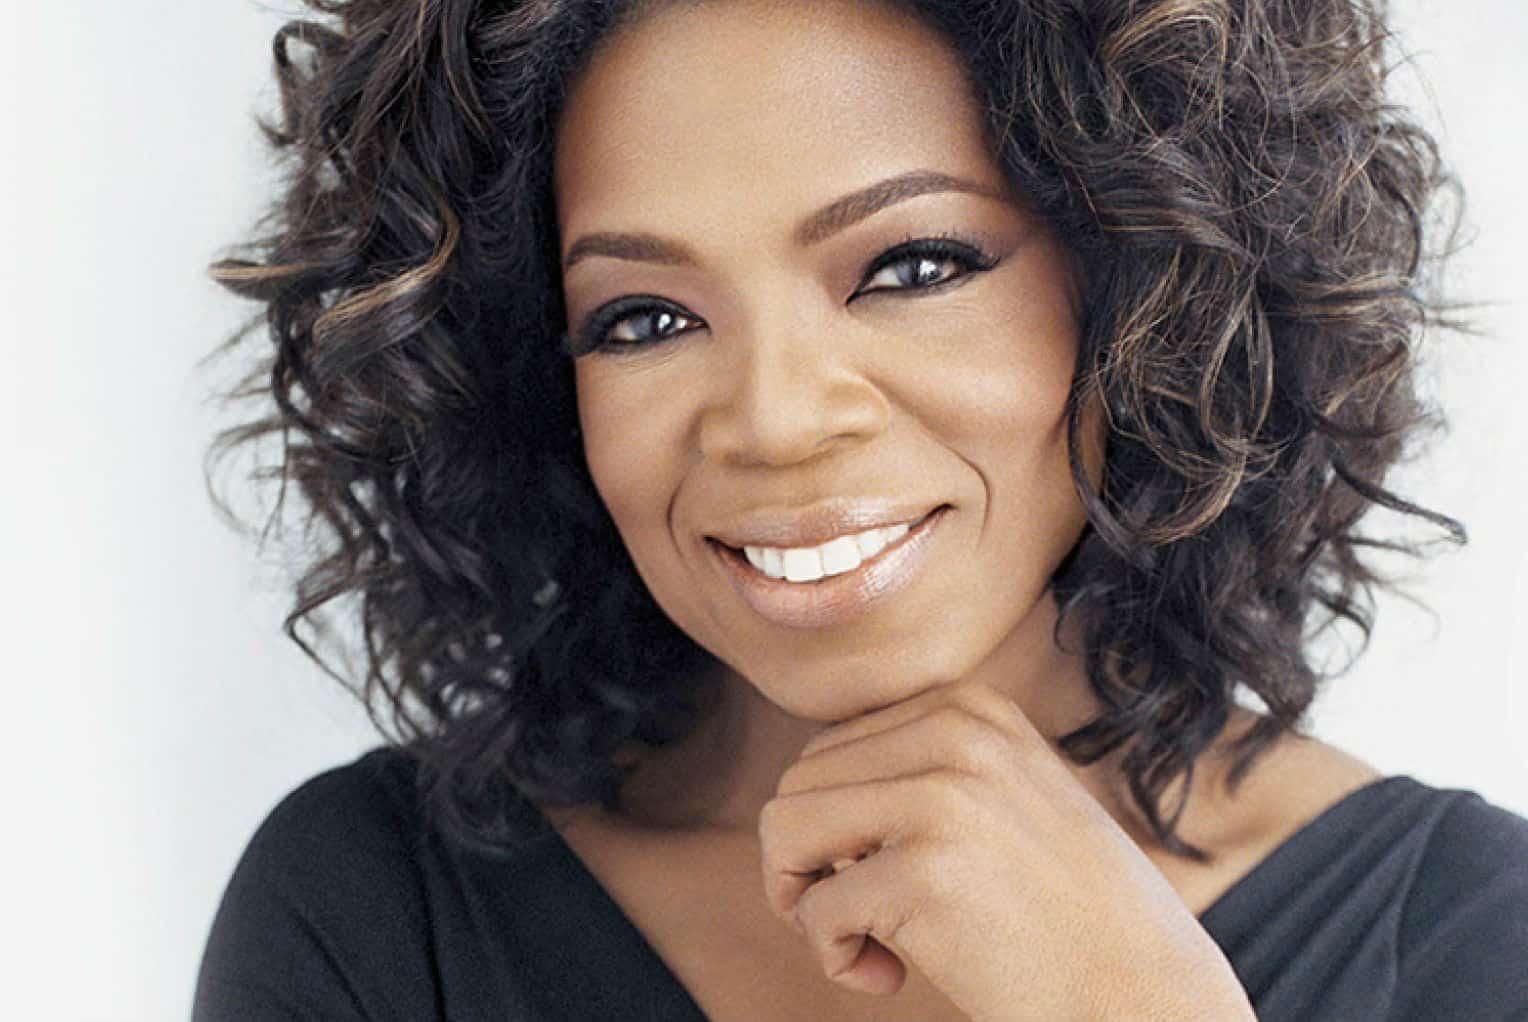 Celebrity Spotlight: Oprah Winfrey #HollywoodSpotlight #hollywood #moviestars #famous #actress #beautiful #celebrity #entertainment #celebrityoftheweek #movies #celebrities #Oprah #oprahwinfrey #beverlyhills #BevHillsMag